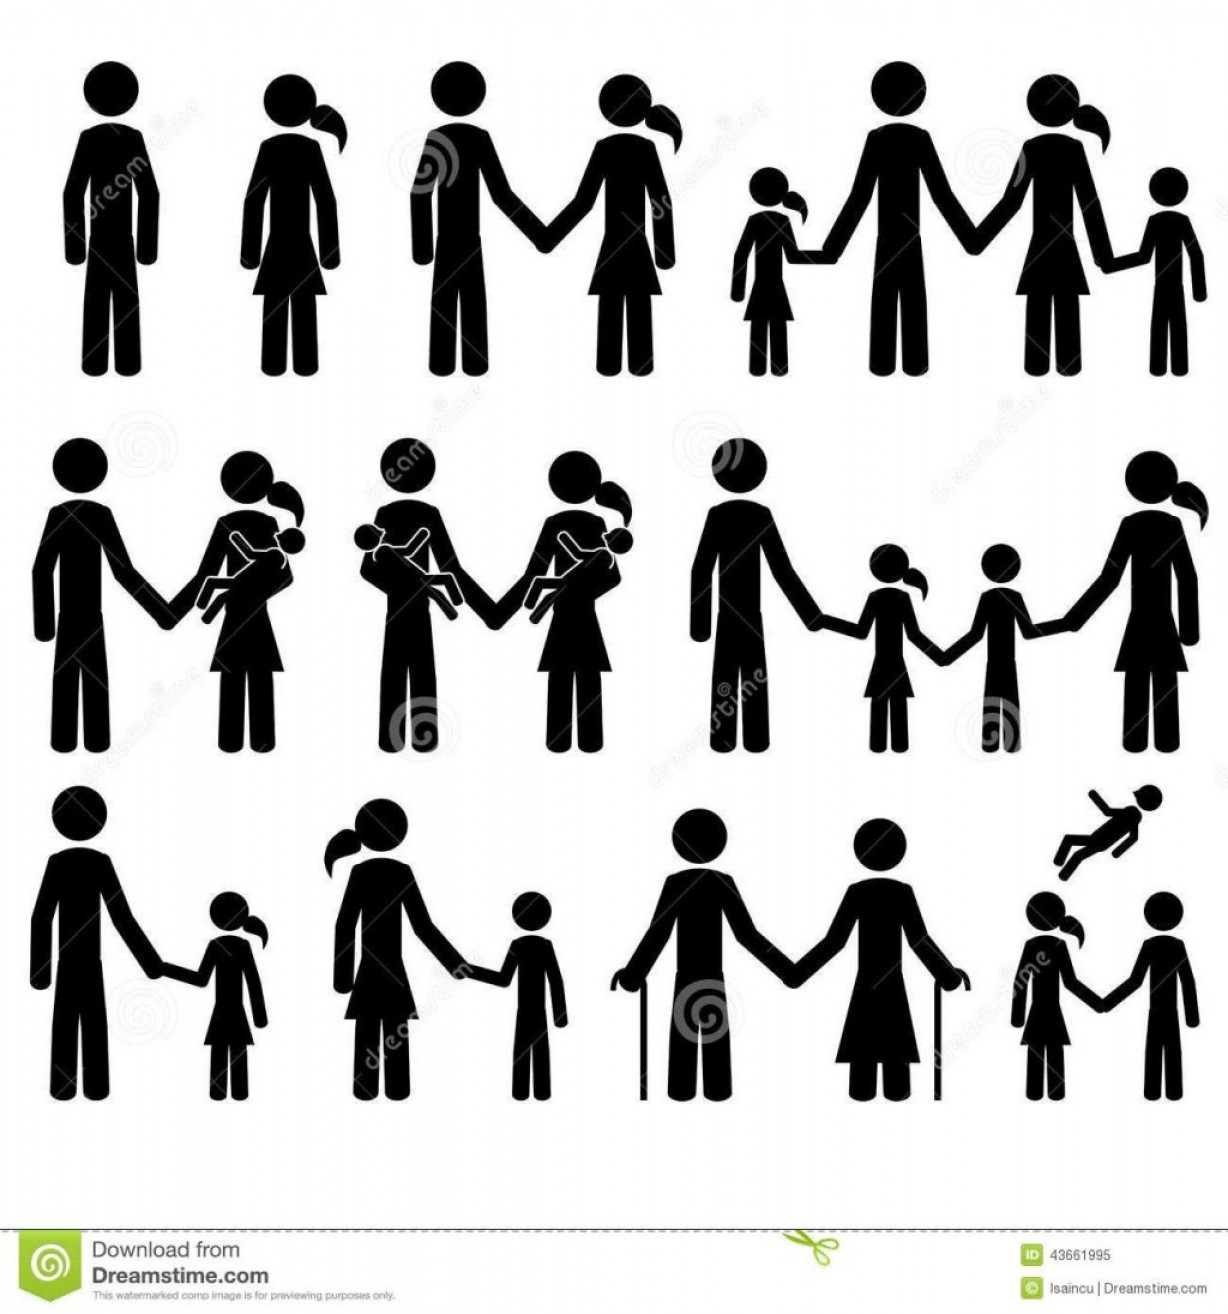 1228x1314 Top People Man Woman Couple Family Old Stick Figure Vector Eps